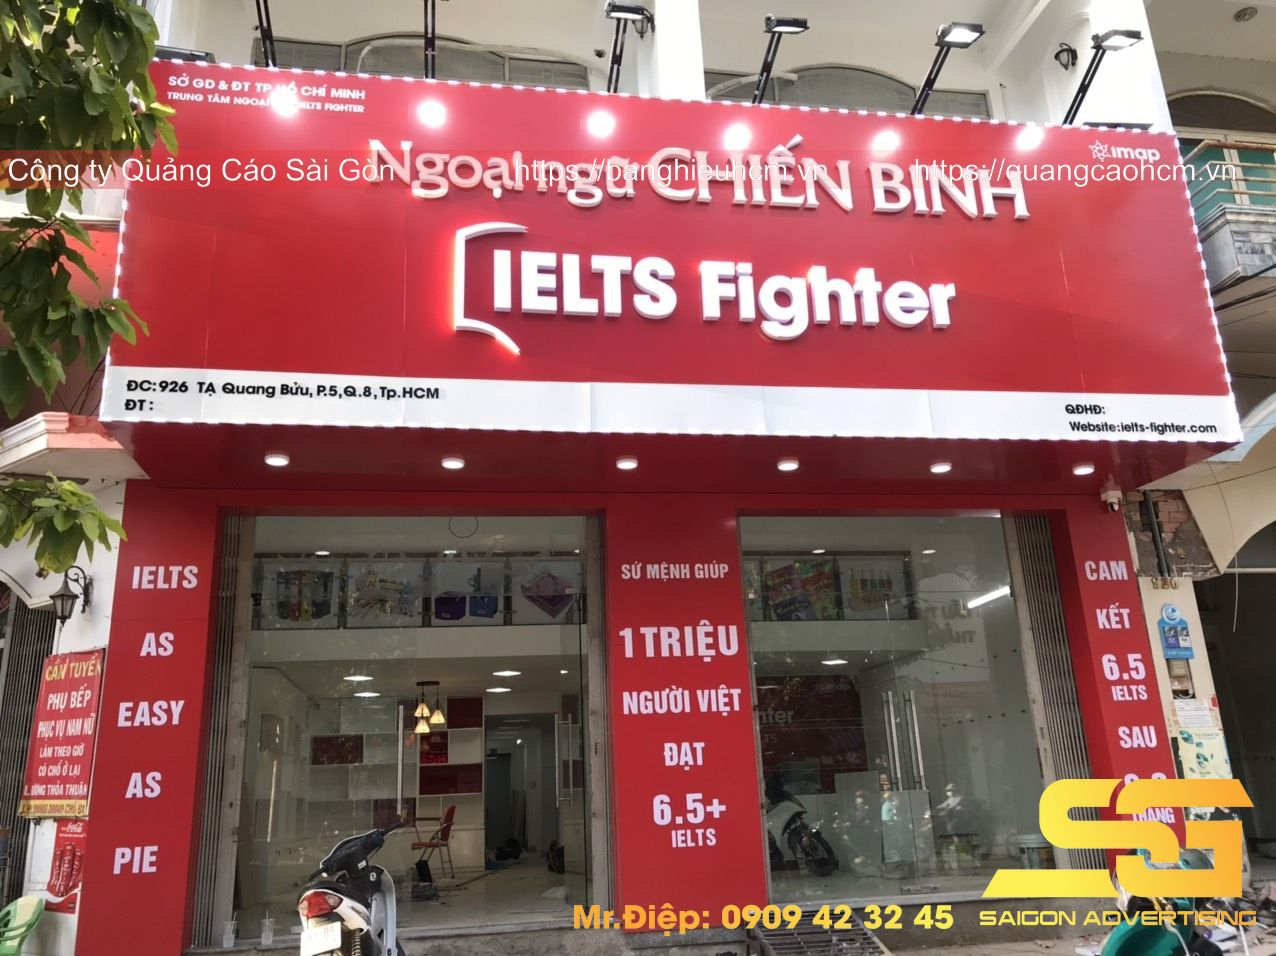 Bang hieu alu ielts fighter